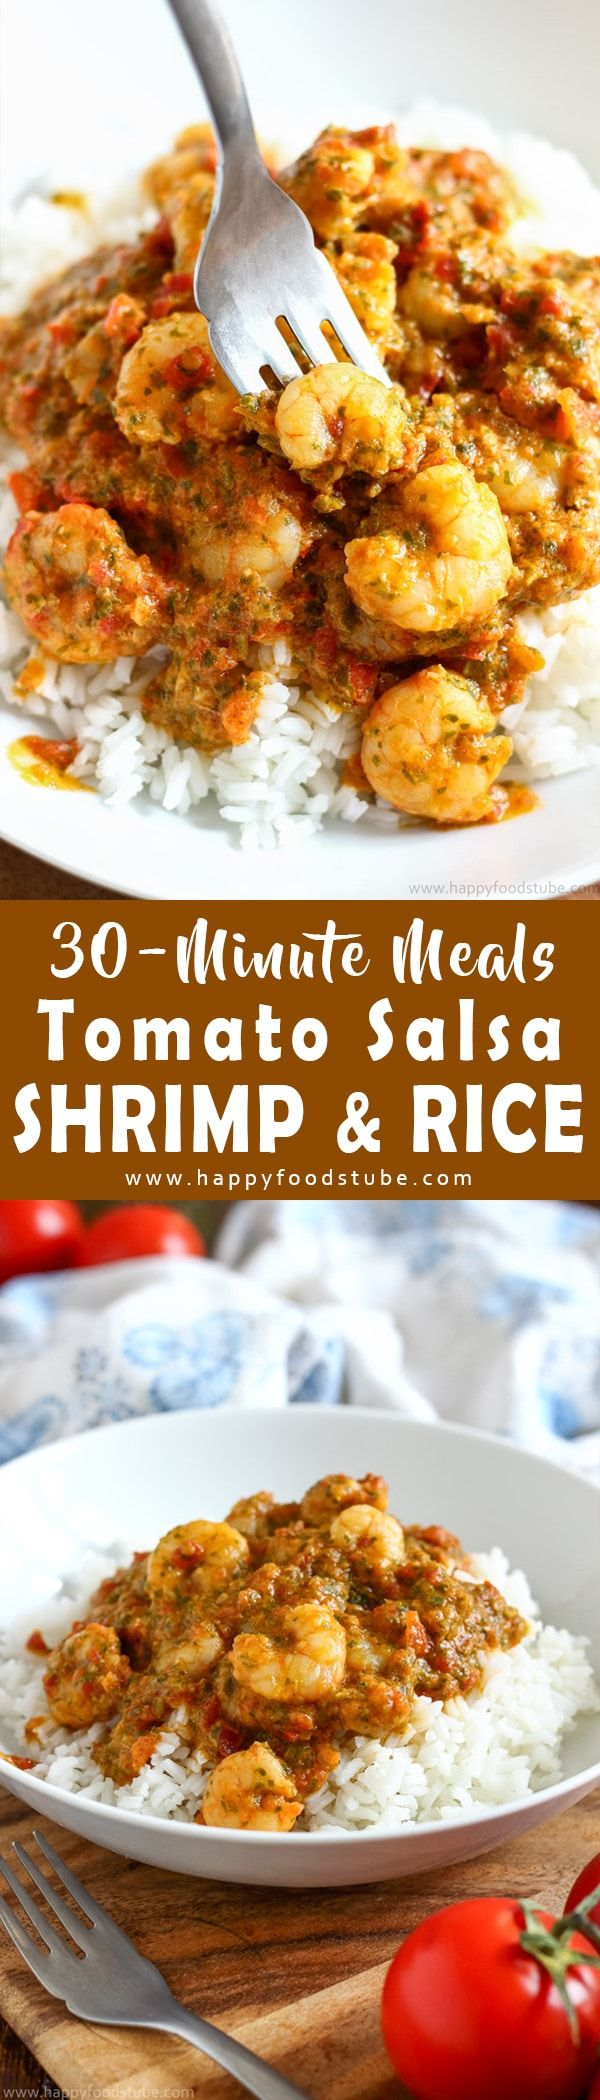 Tomato salsa shrimp and rice is a perfect dinner for busy weeknights. Quick and easy 30-minute meal recipe. Only simple ingredients. Family favorite recipe ideas via @happyfoodstube